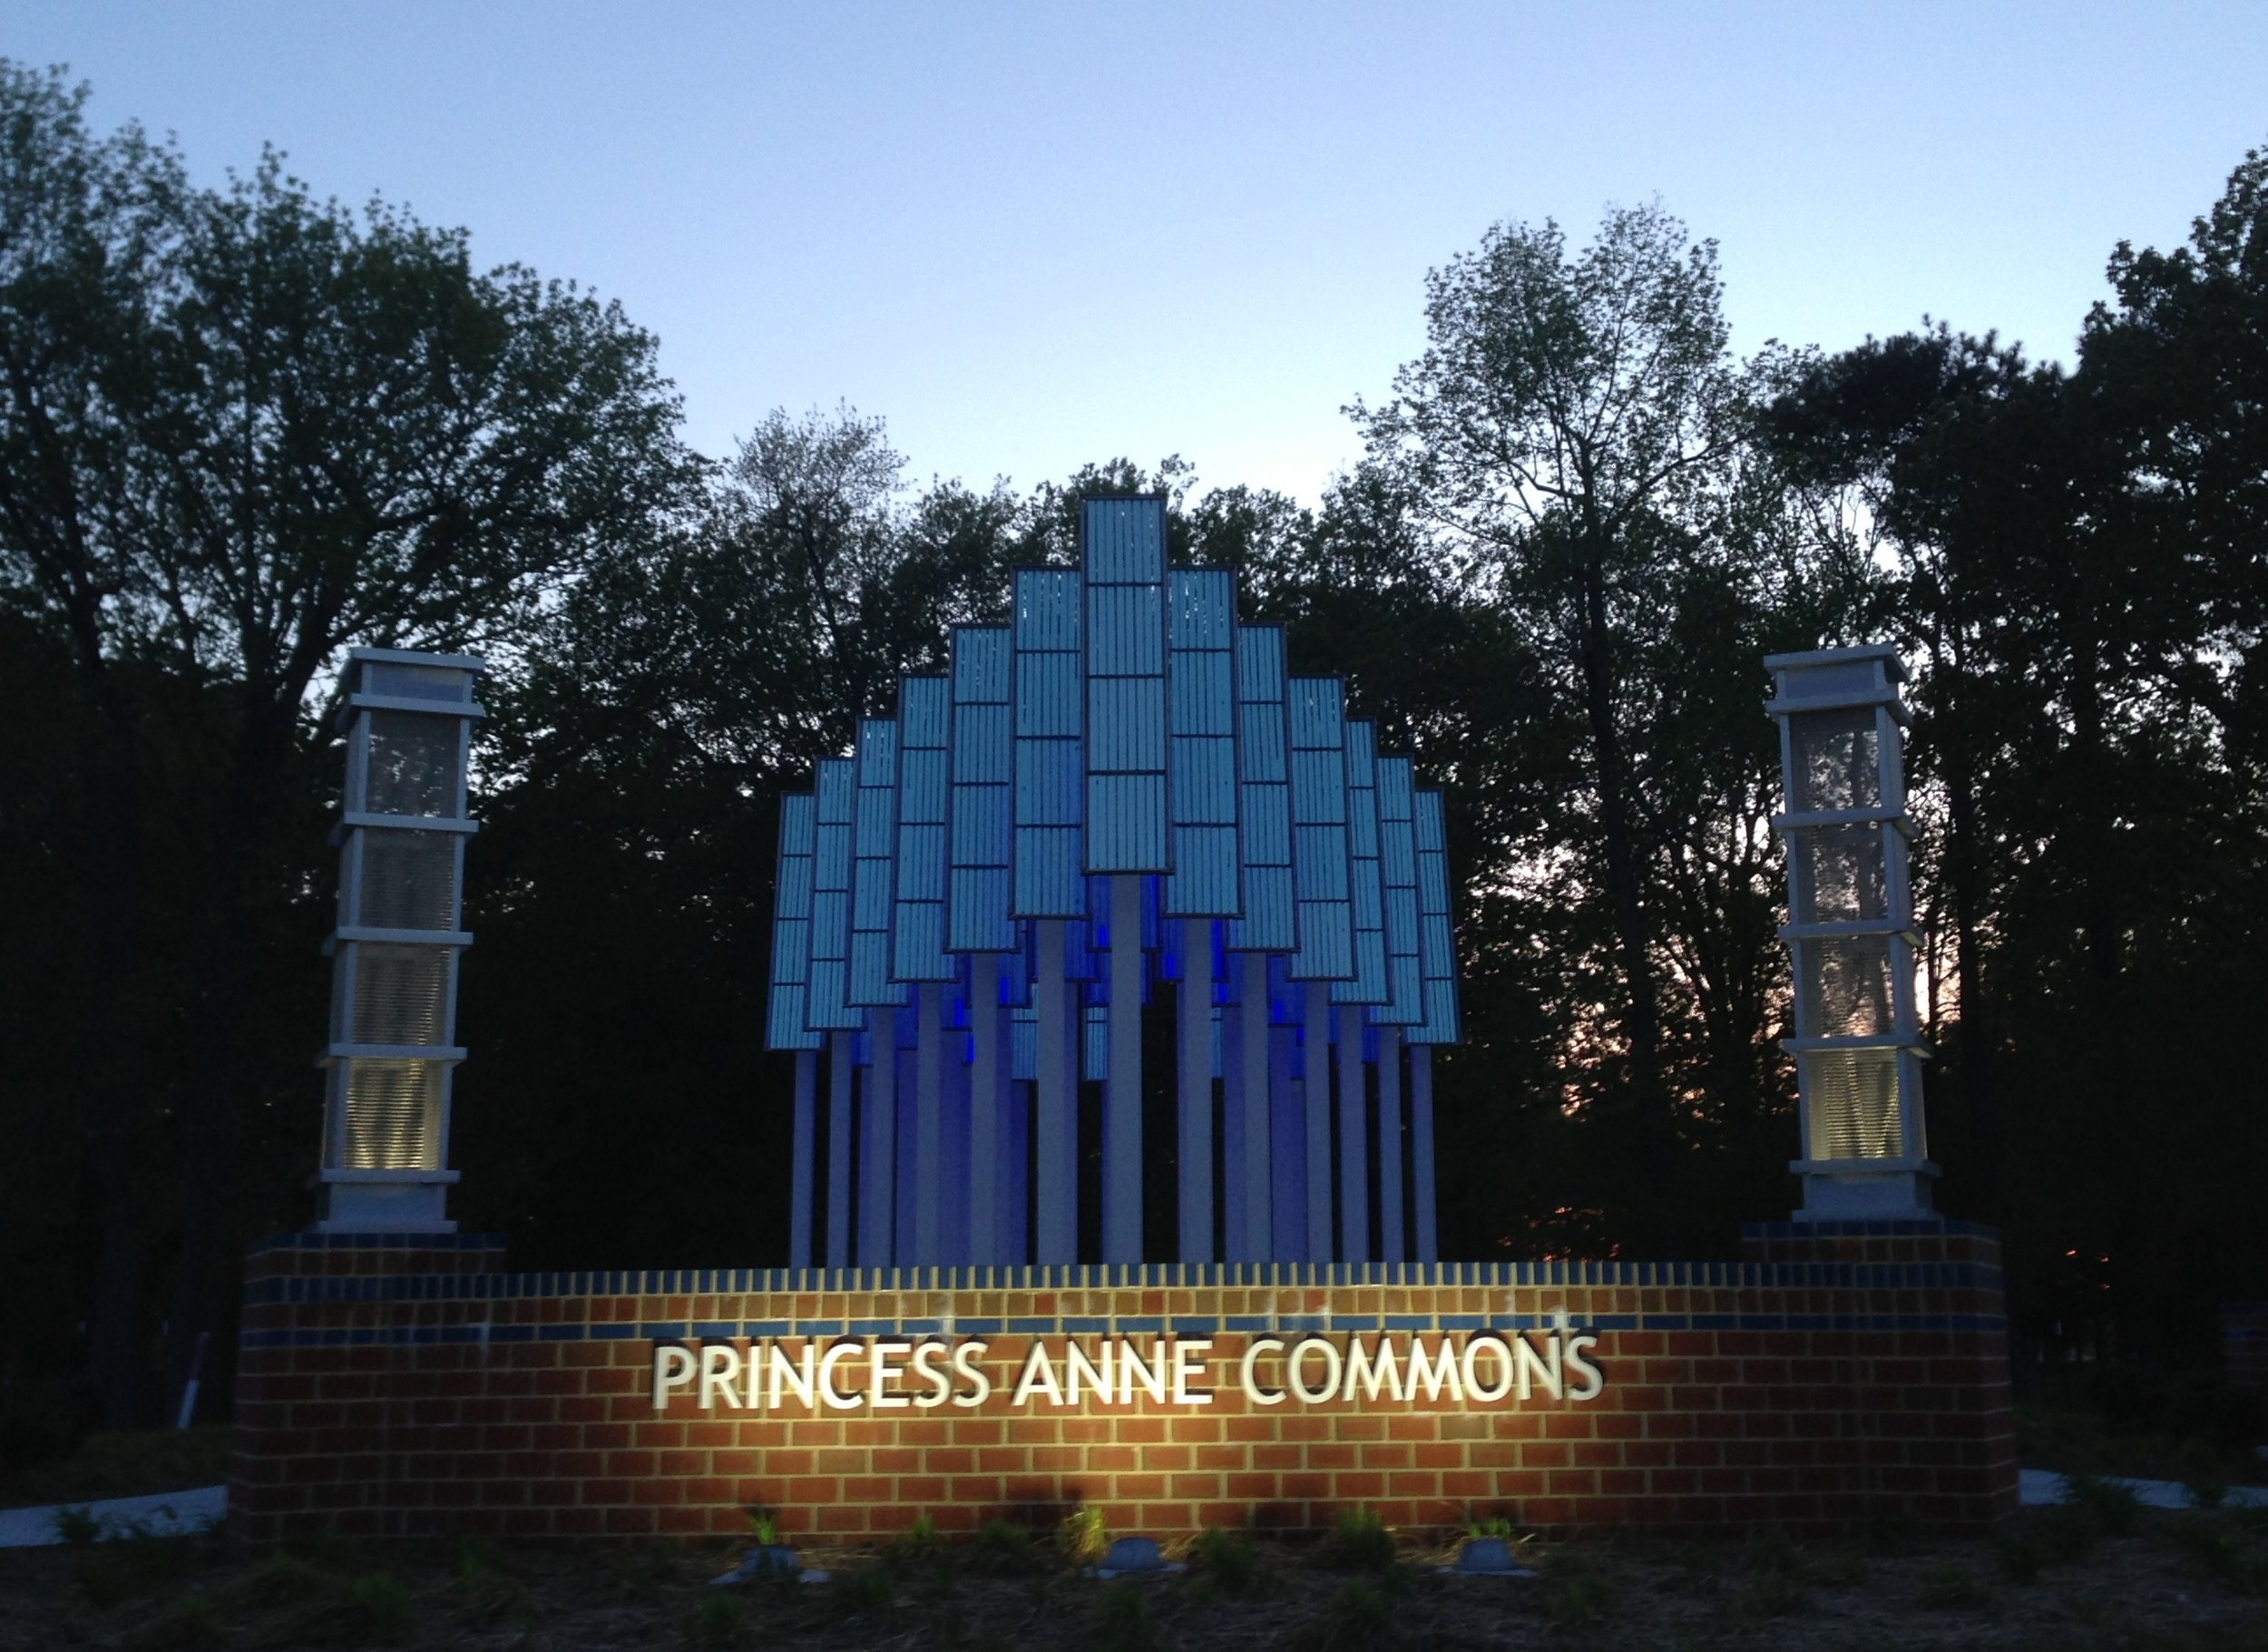 Princess Anne Commons Gateway